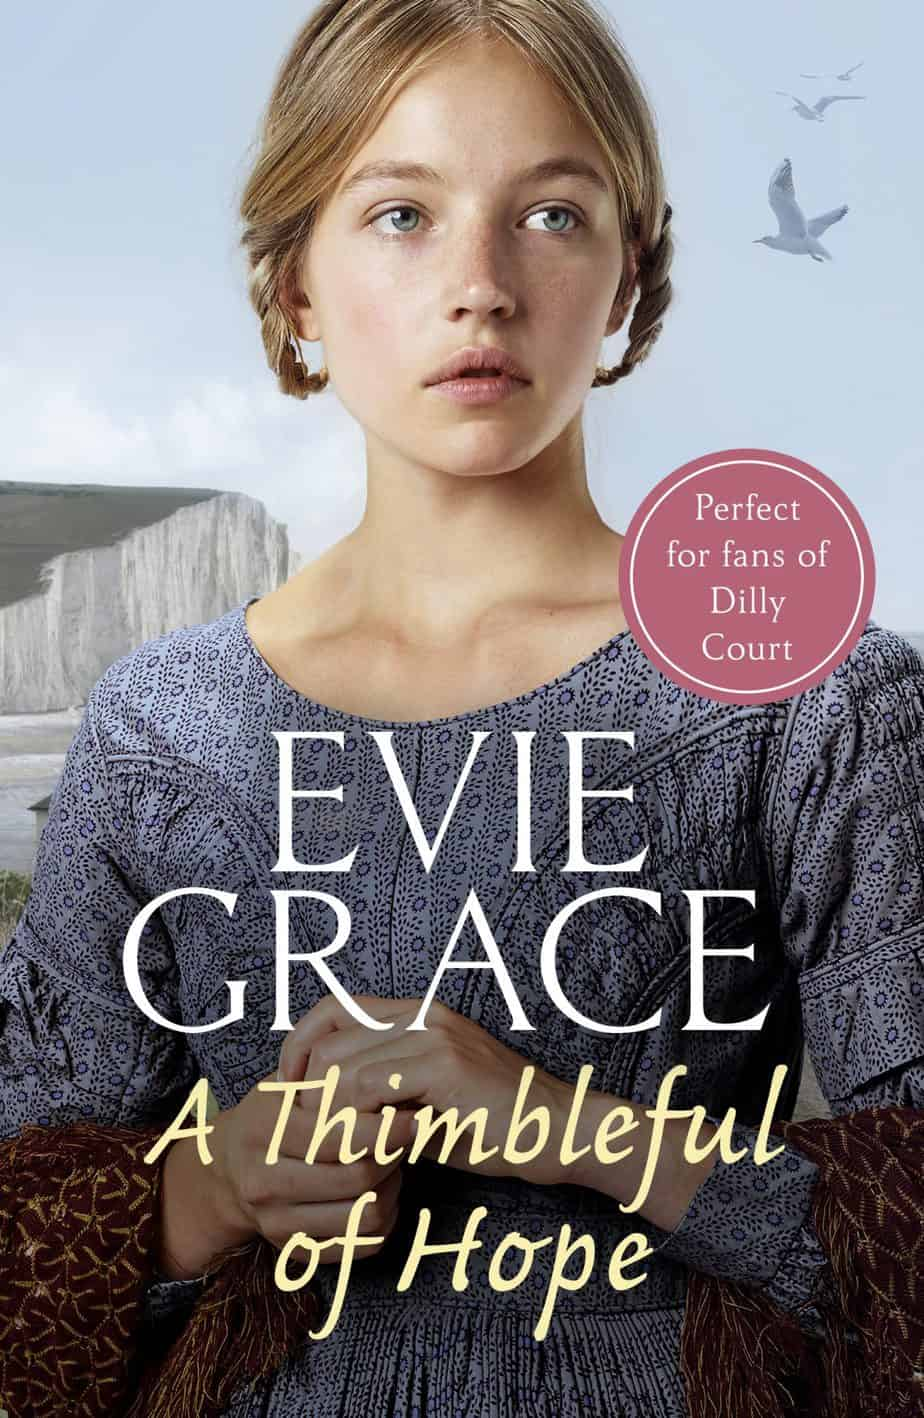 A Thimbleful of Hope Evie Grace